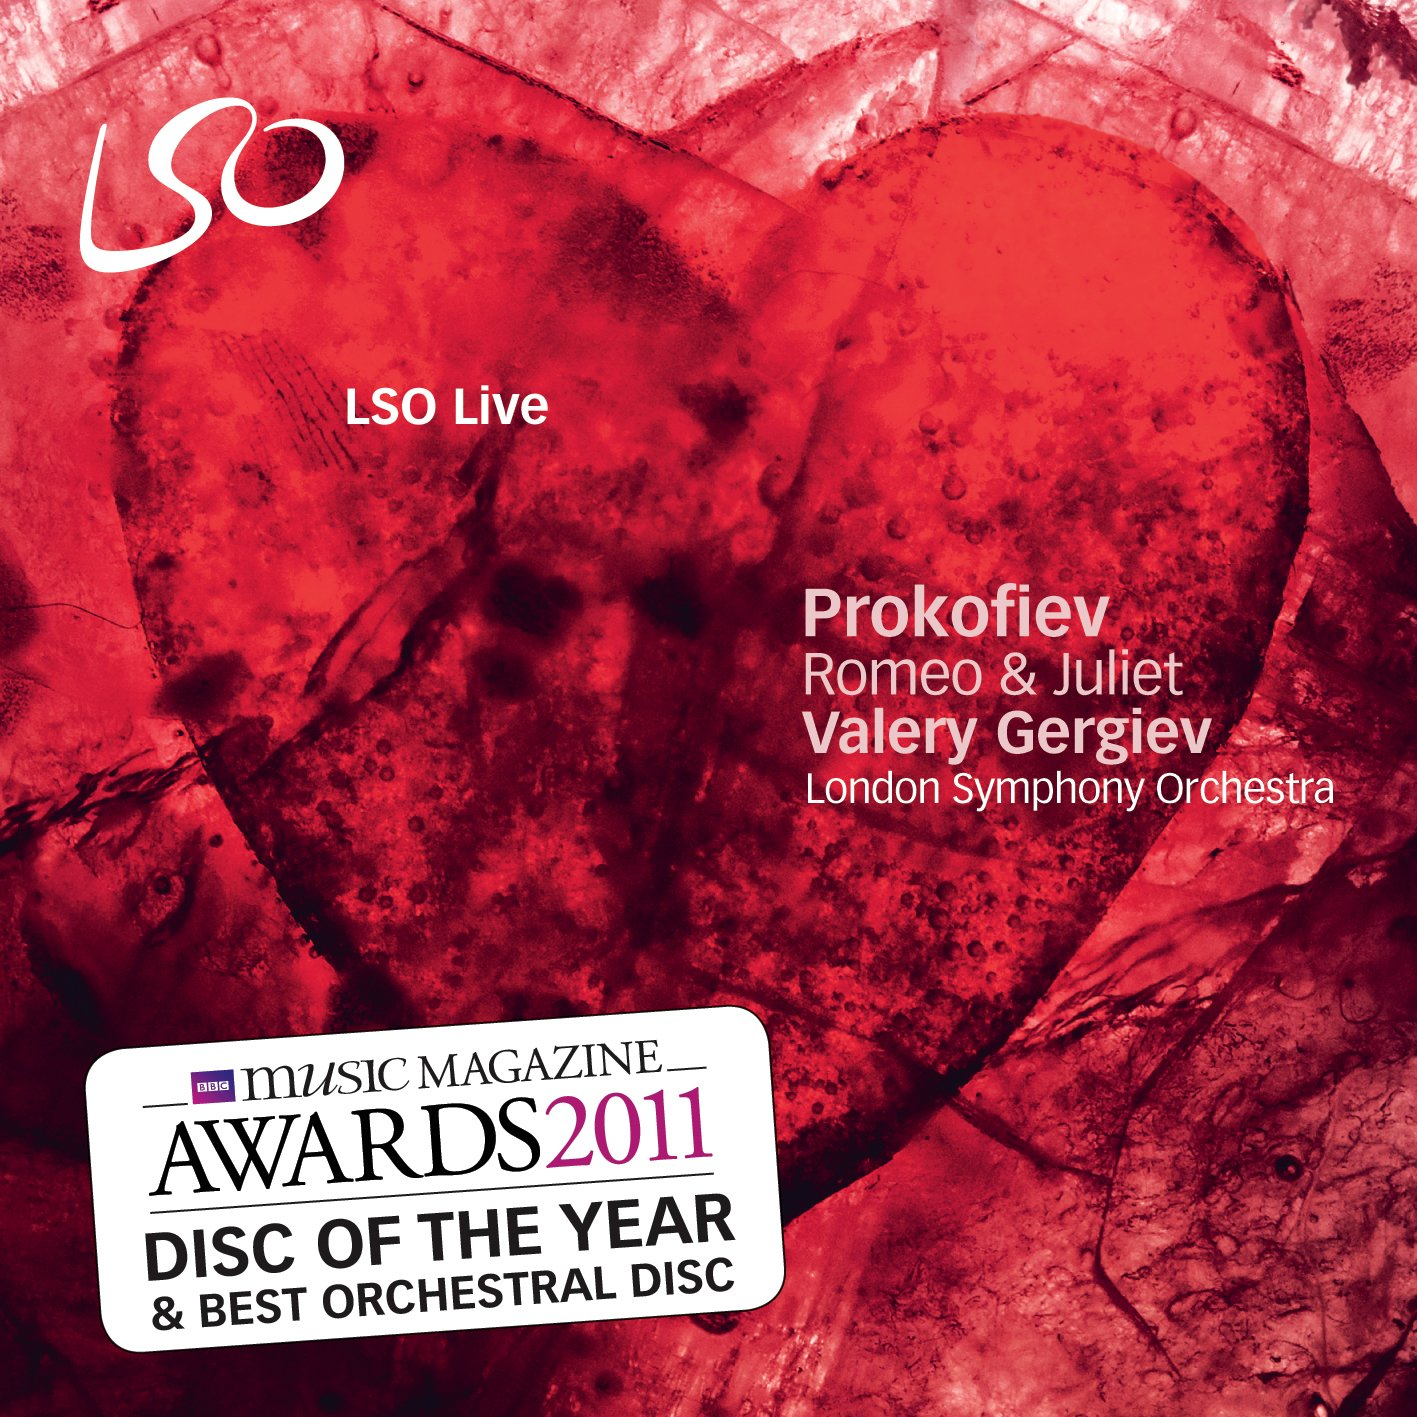 Prokofiev: Romeo & Juliet by LSO LIVE